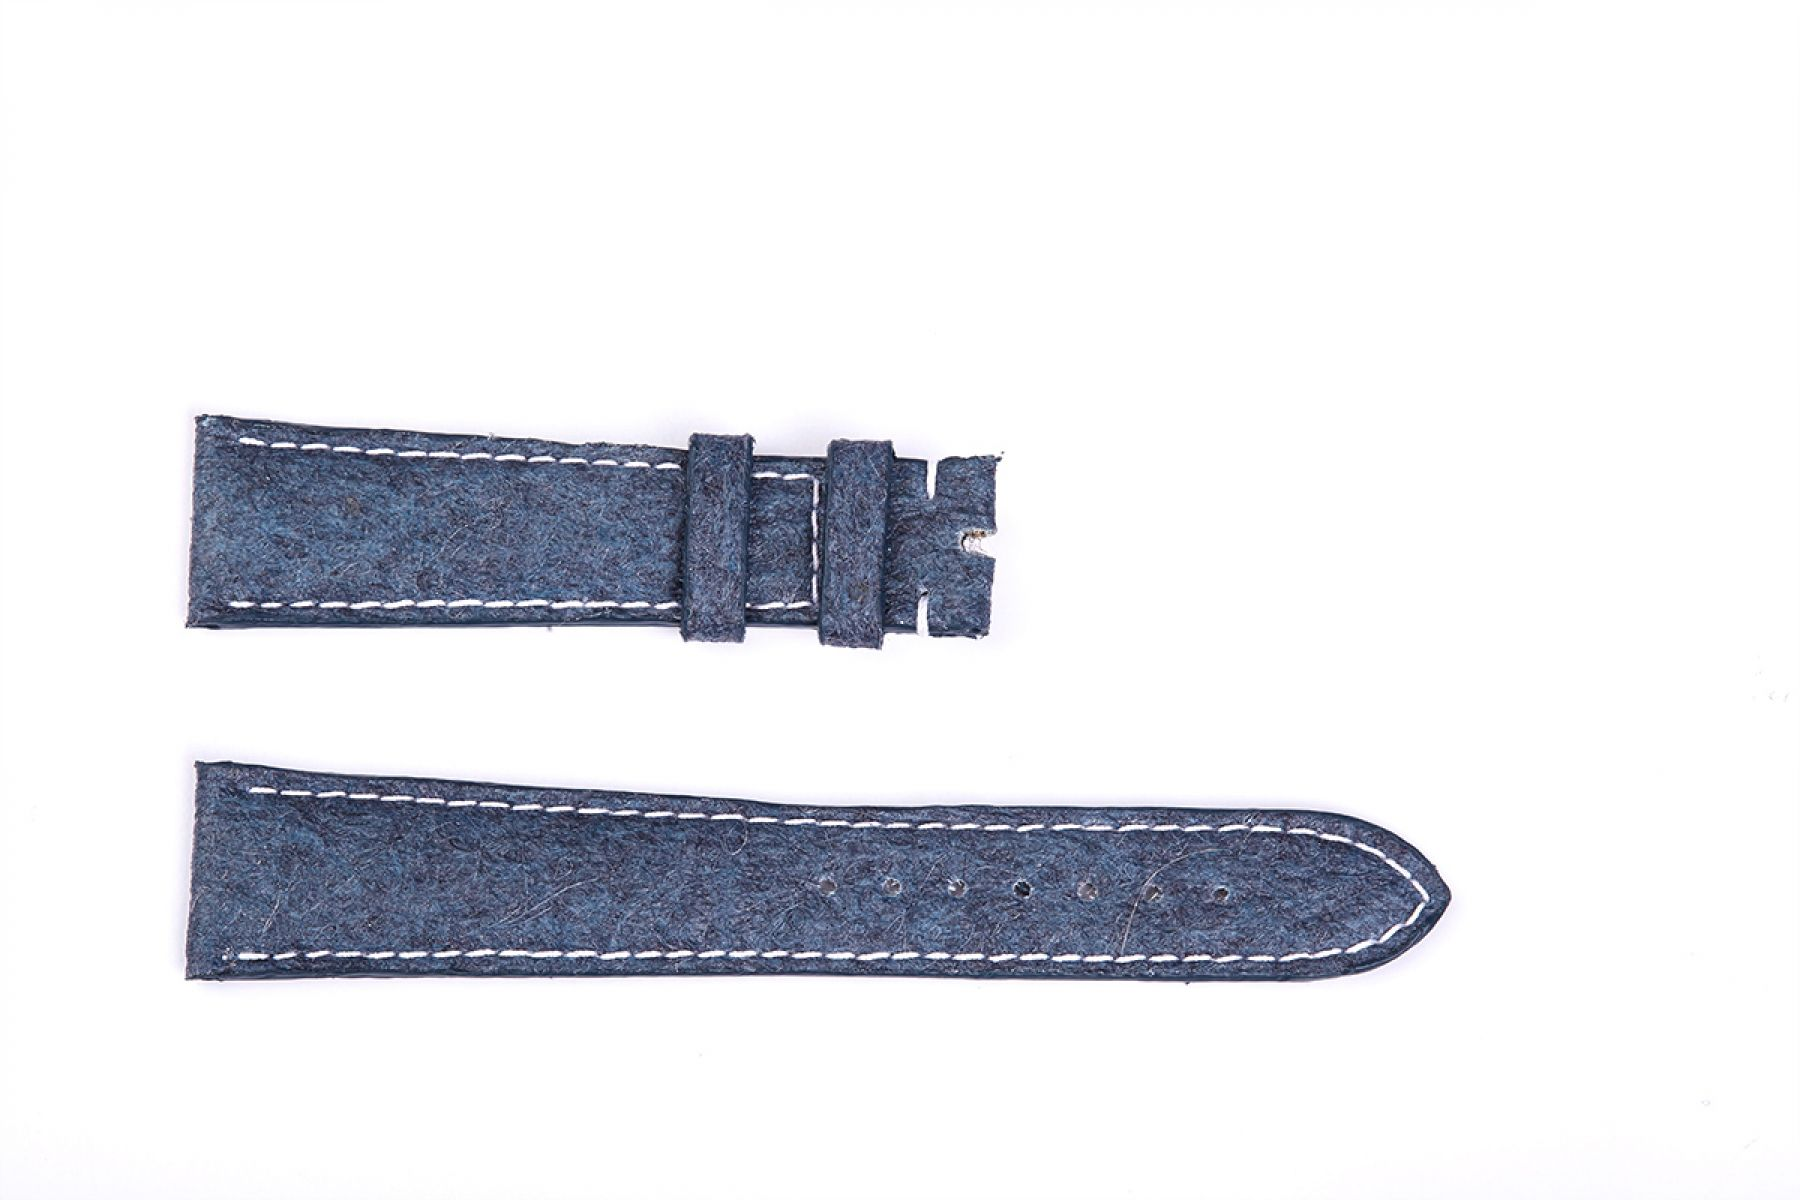 Blue Indigo Pinatex Strap 16mm, 18mm, 19mm, 20mm, 21mm, 22mm General style